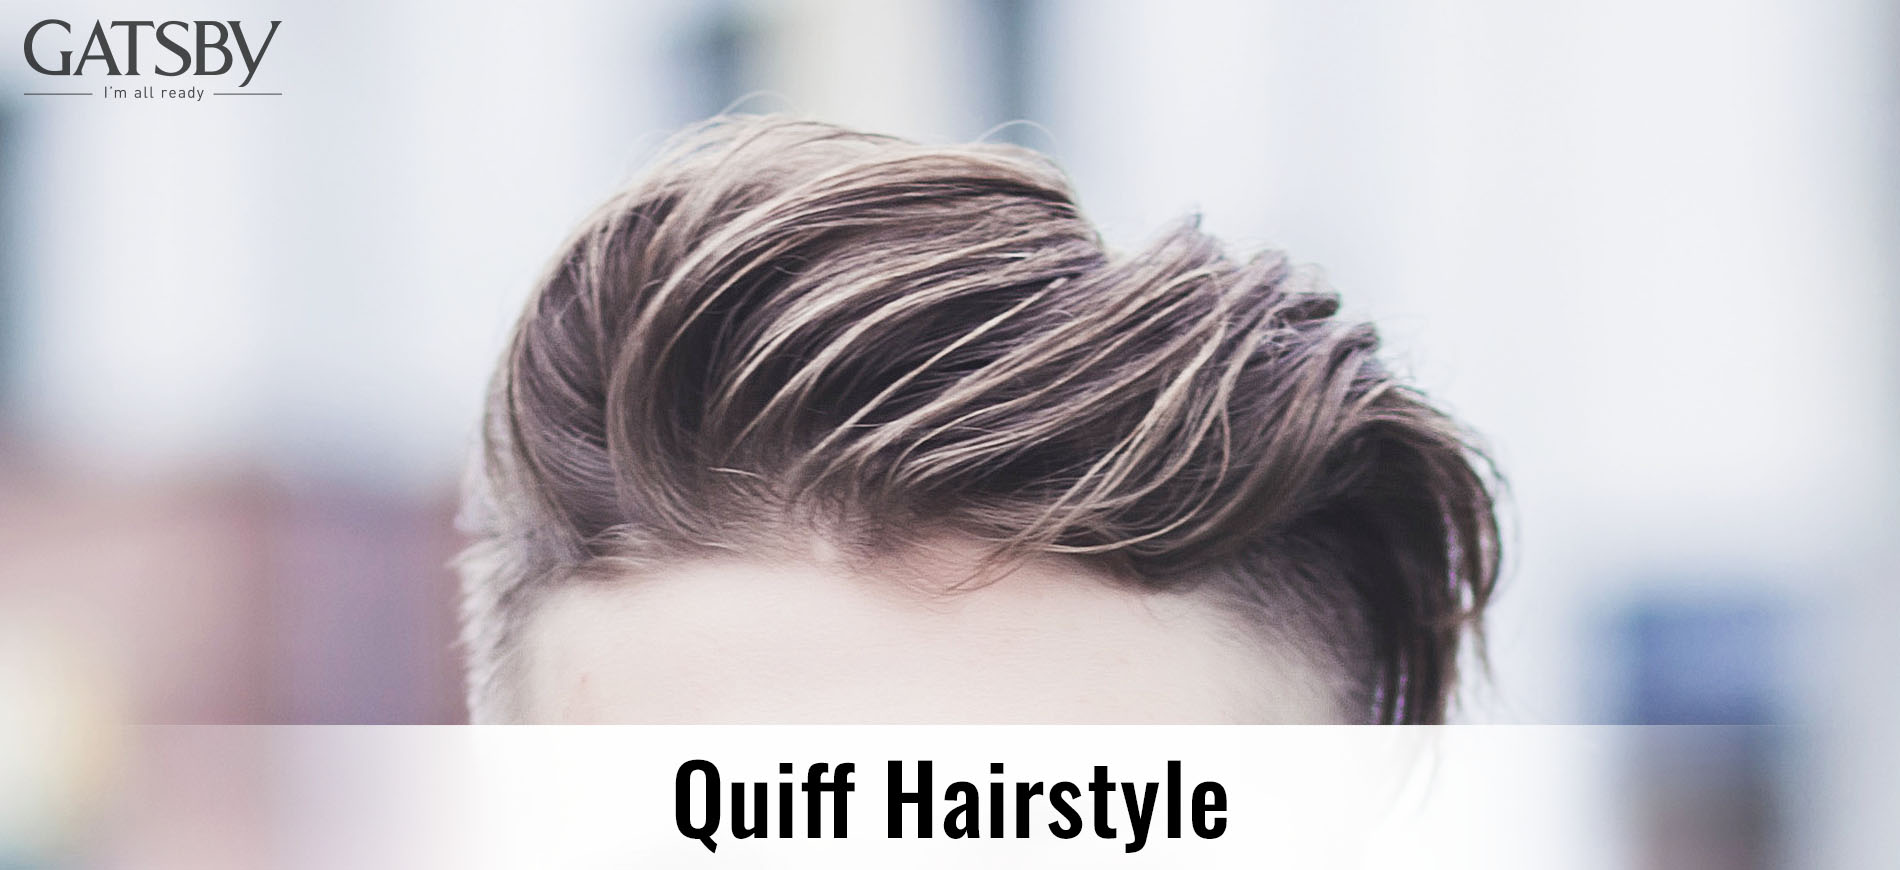 The Essential Guide To Quiff Hairstyle For Men By Gatsby